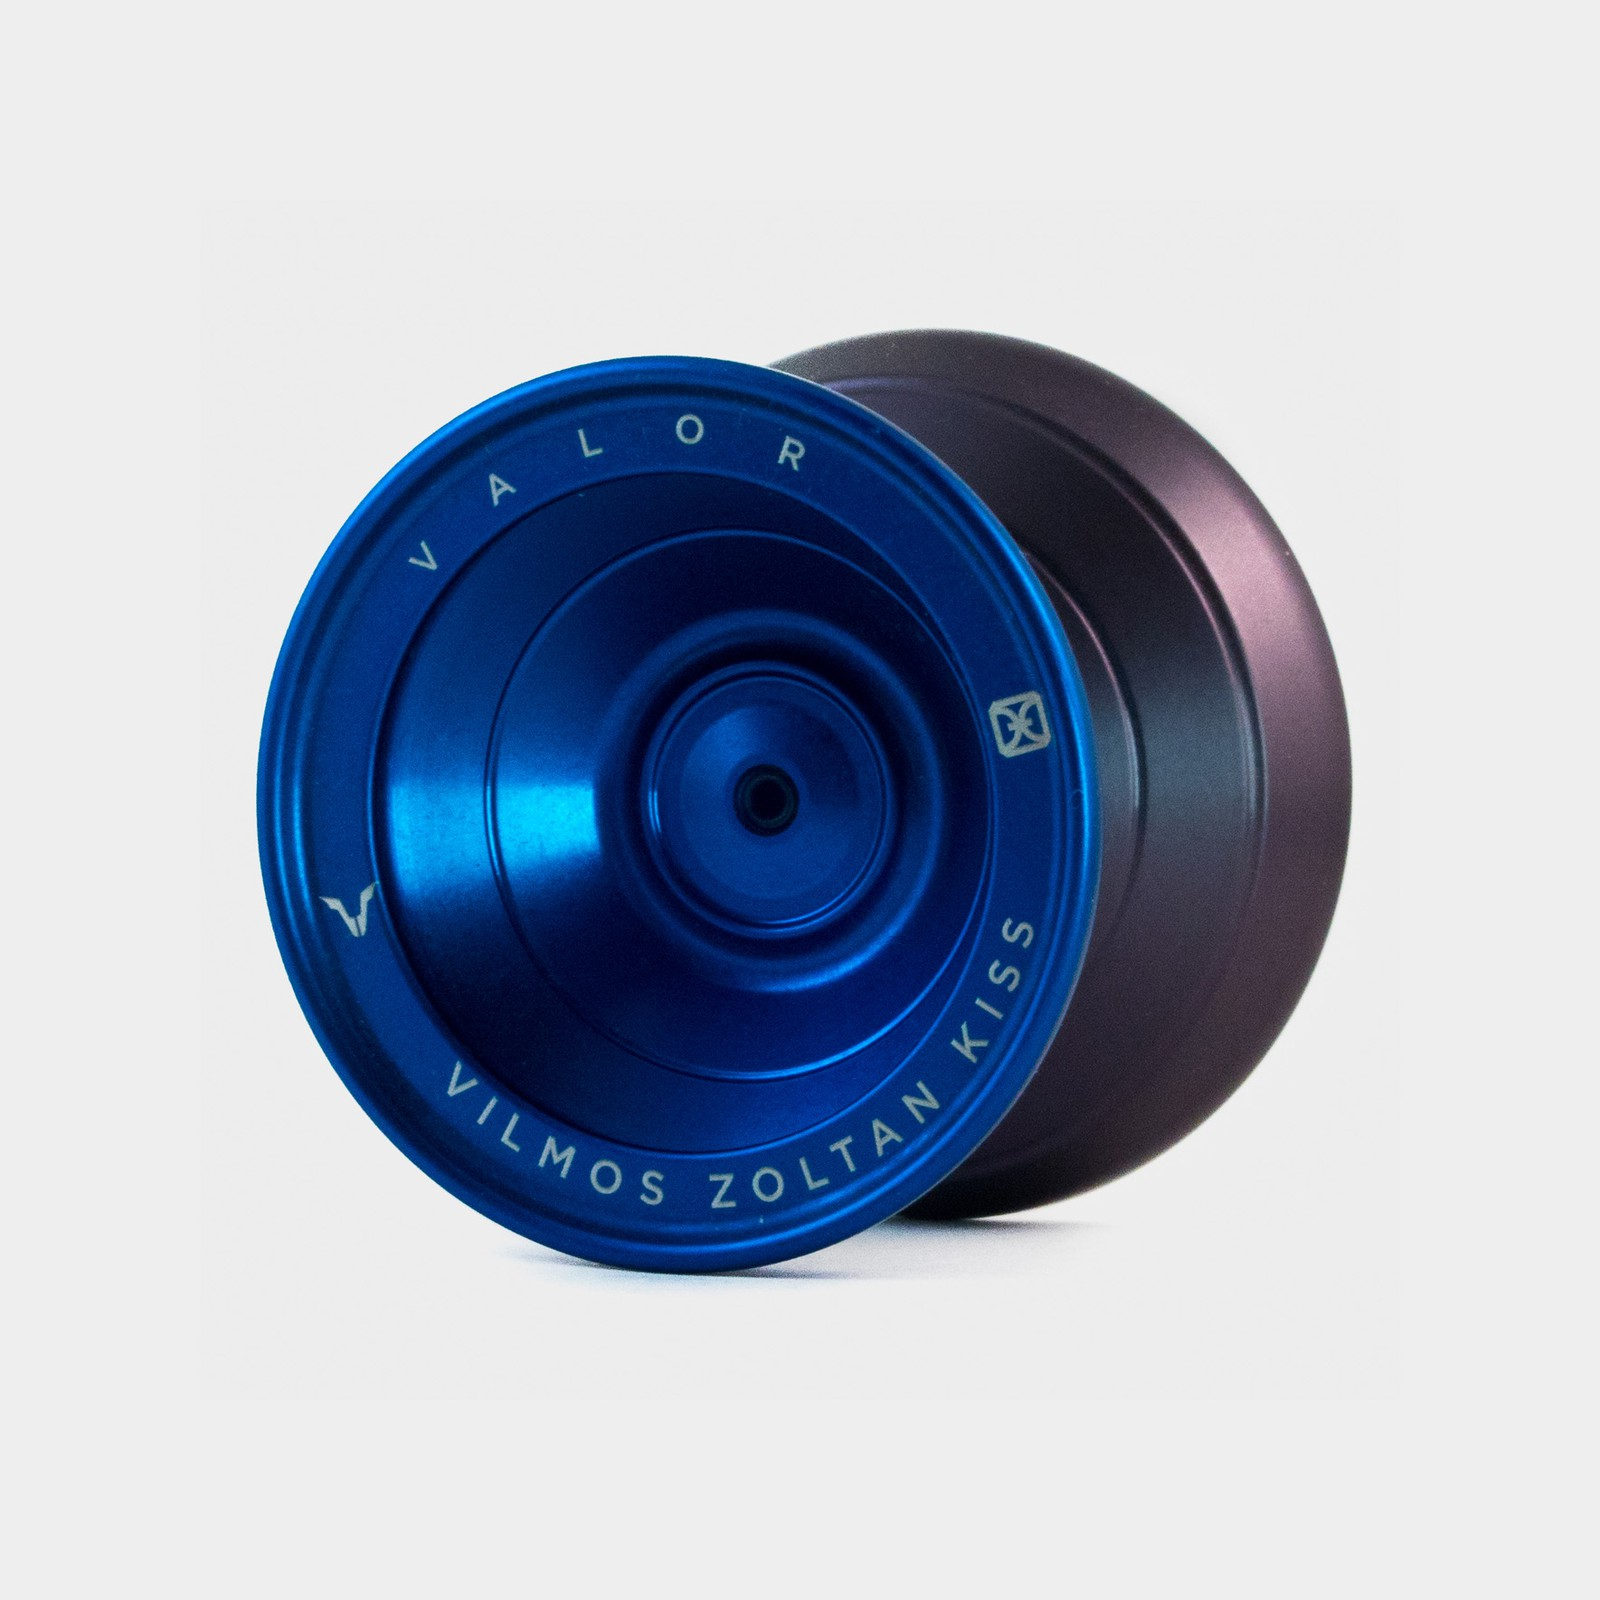 Йо-йо Valor в редакции Blue / Dark Grey от One Drop YoYos